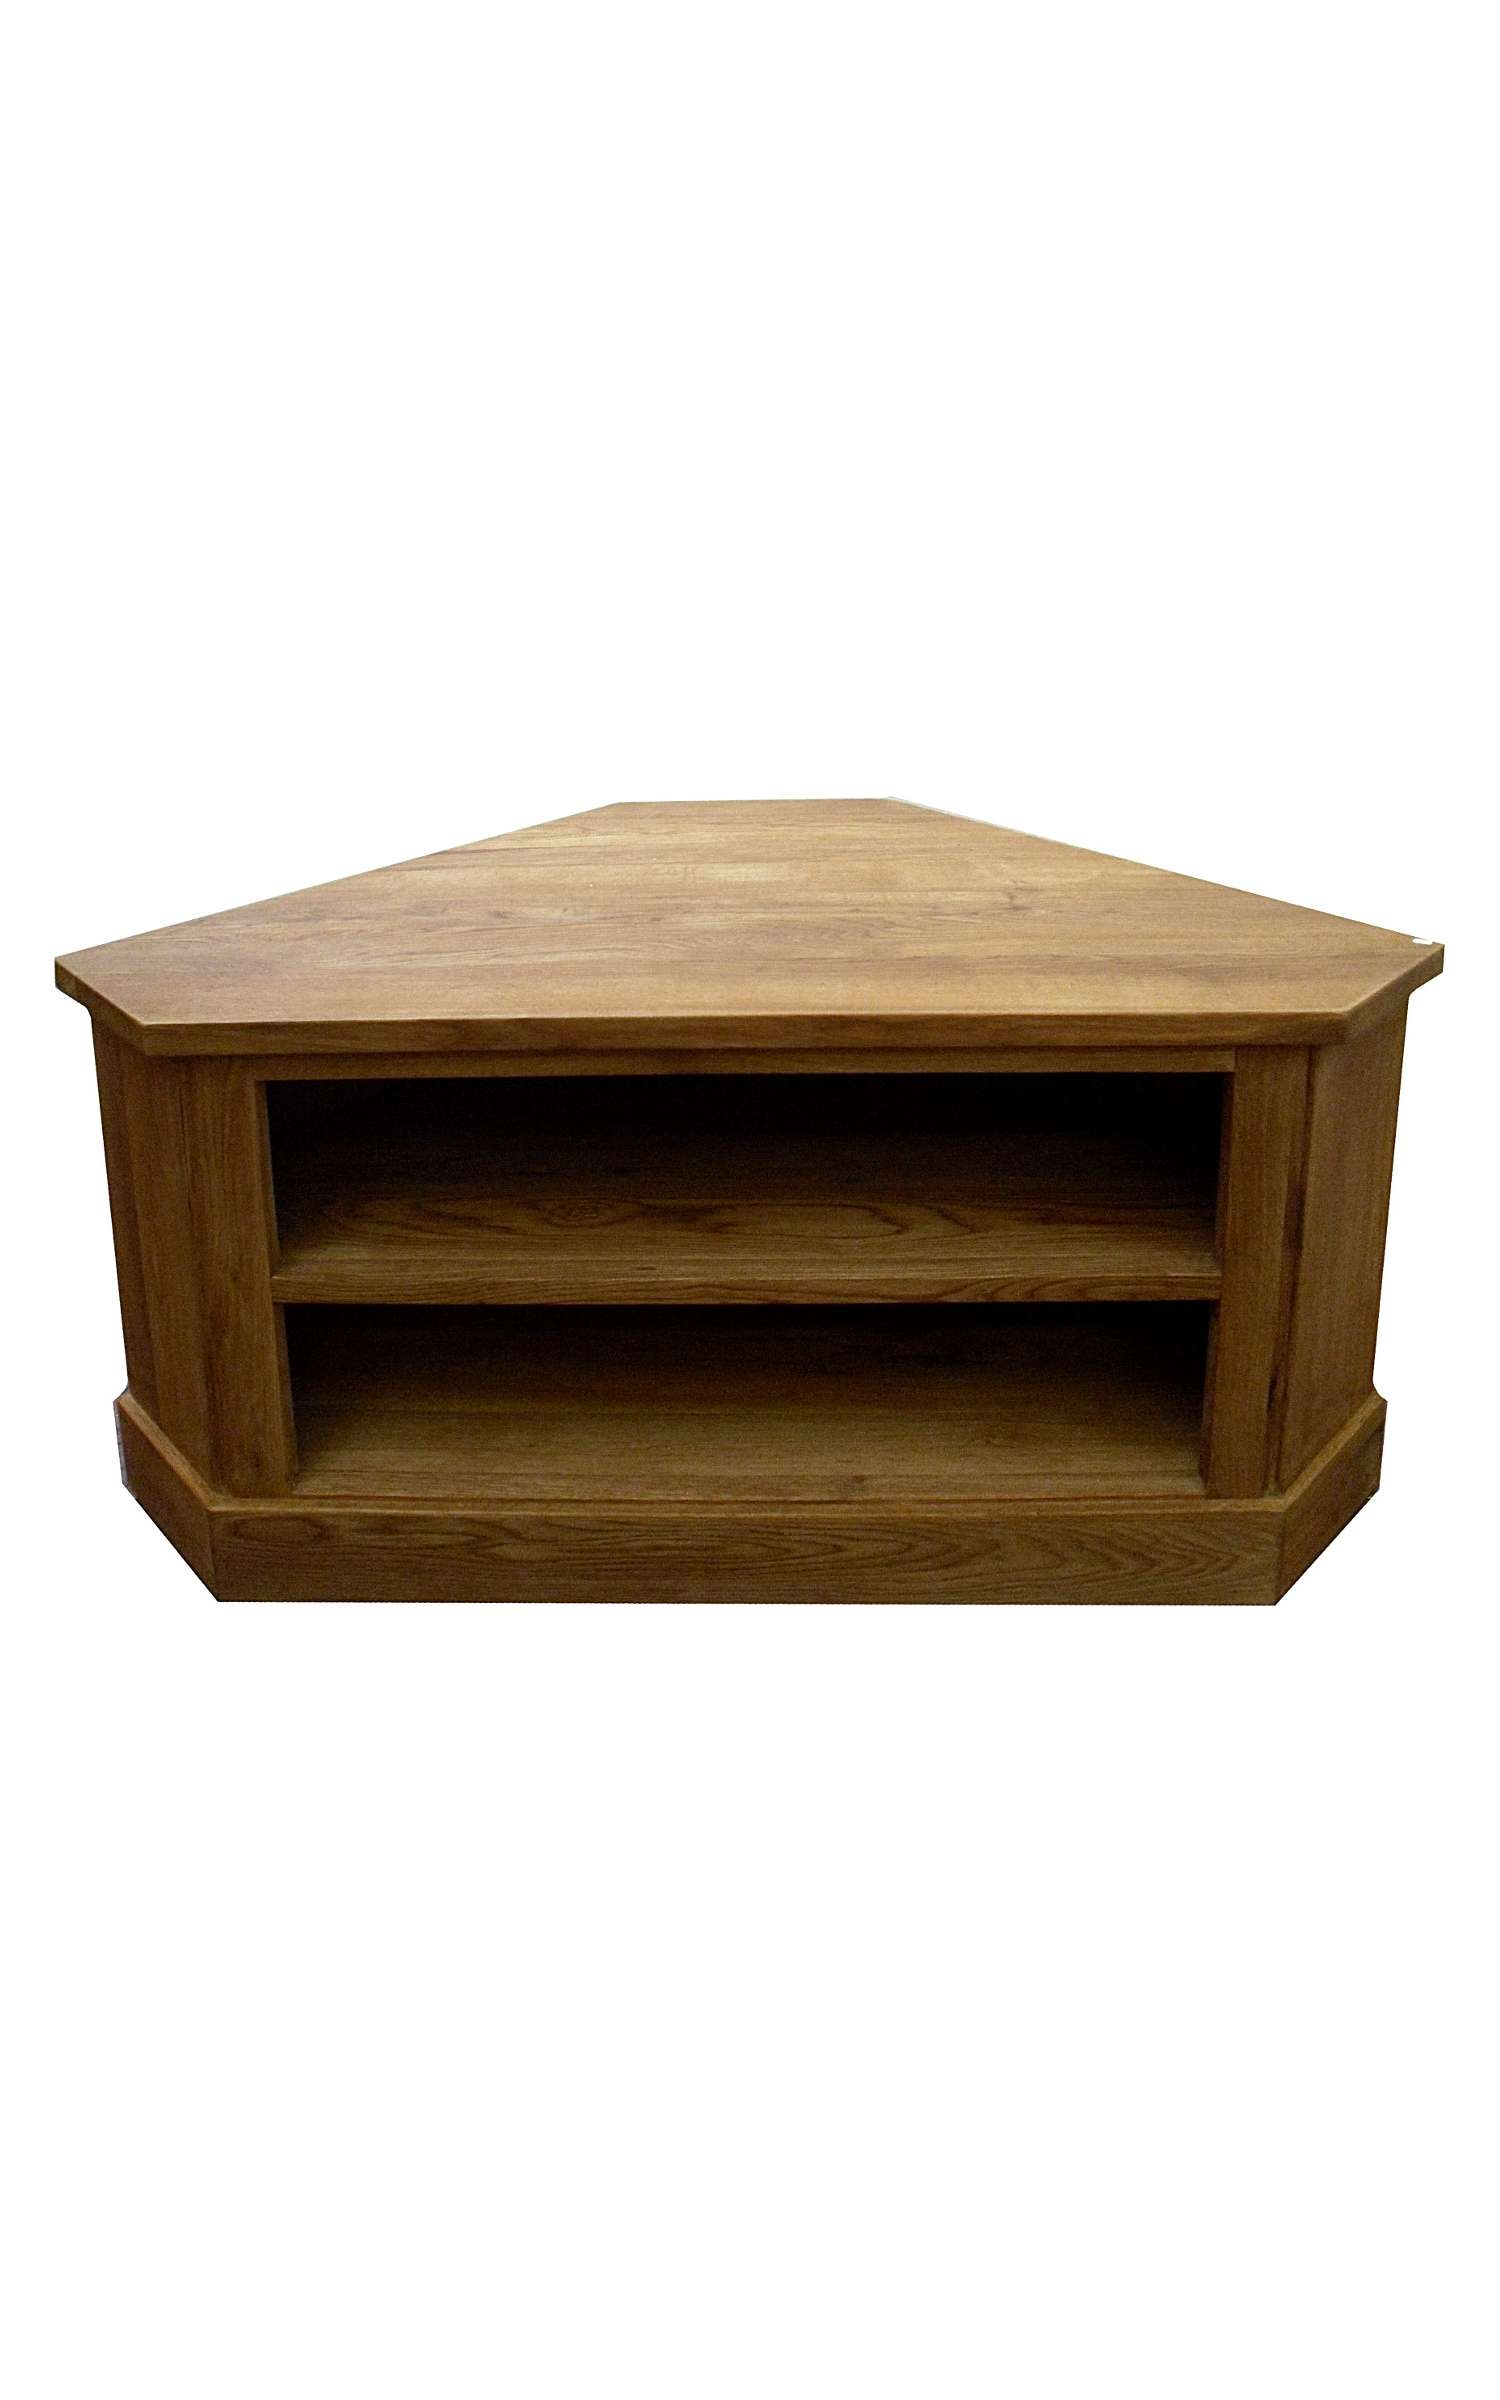 Small Wooden Corner Tv Stand Console Cabinet With Fireplace And Within Pine Corner Tv Stands (View 8 of 15)